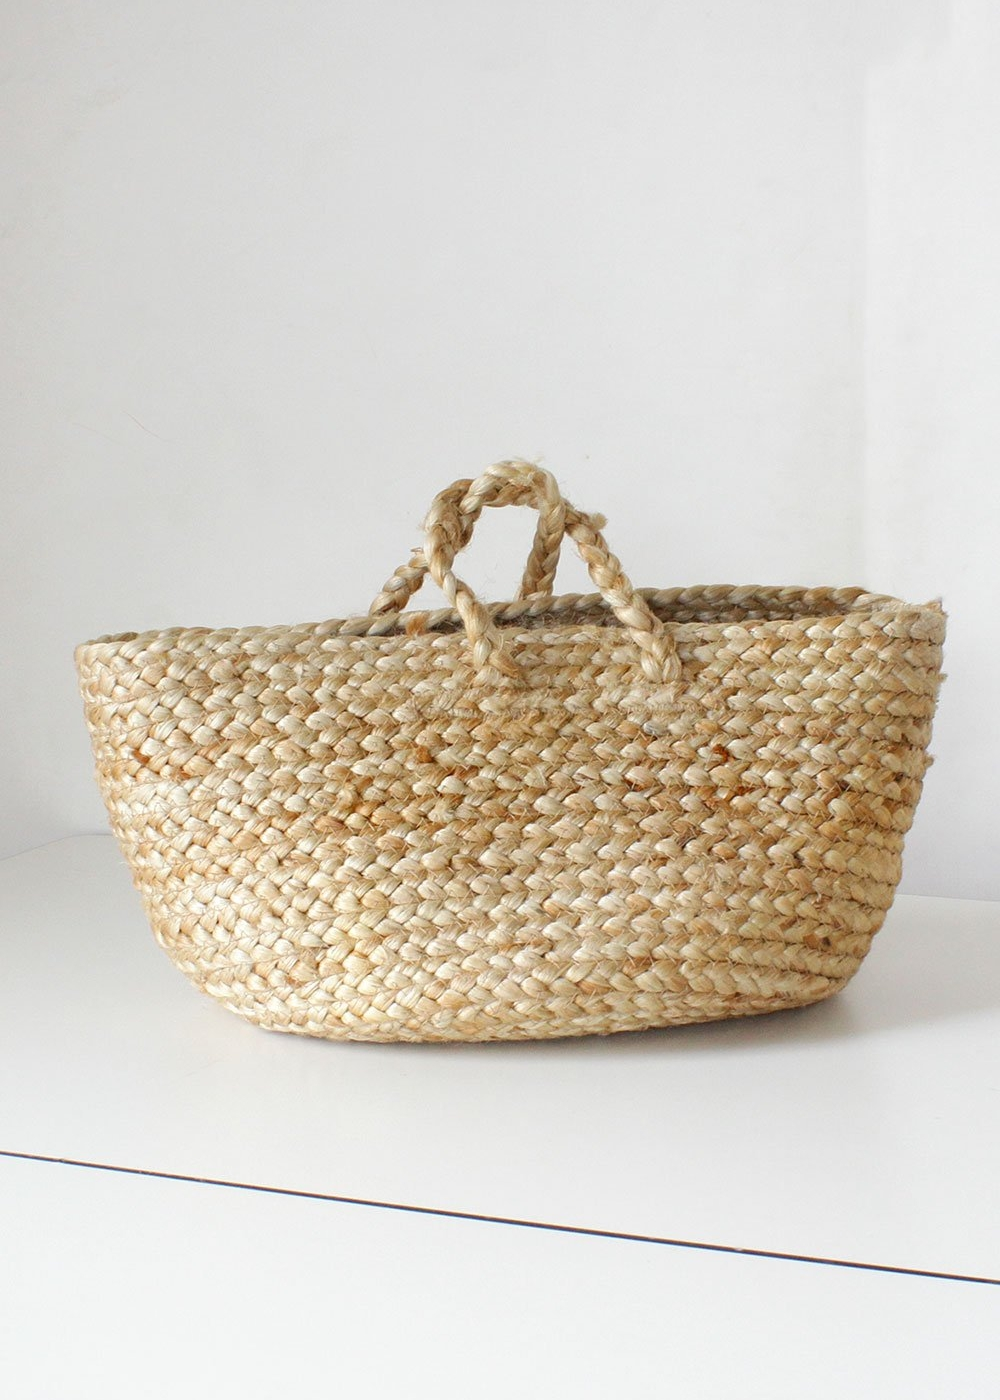 A good woven bag - These are all over the market online, and in stores, but we always grab vintage when we can. And a bag like this will last forever with proper care.